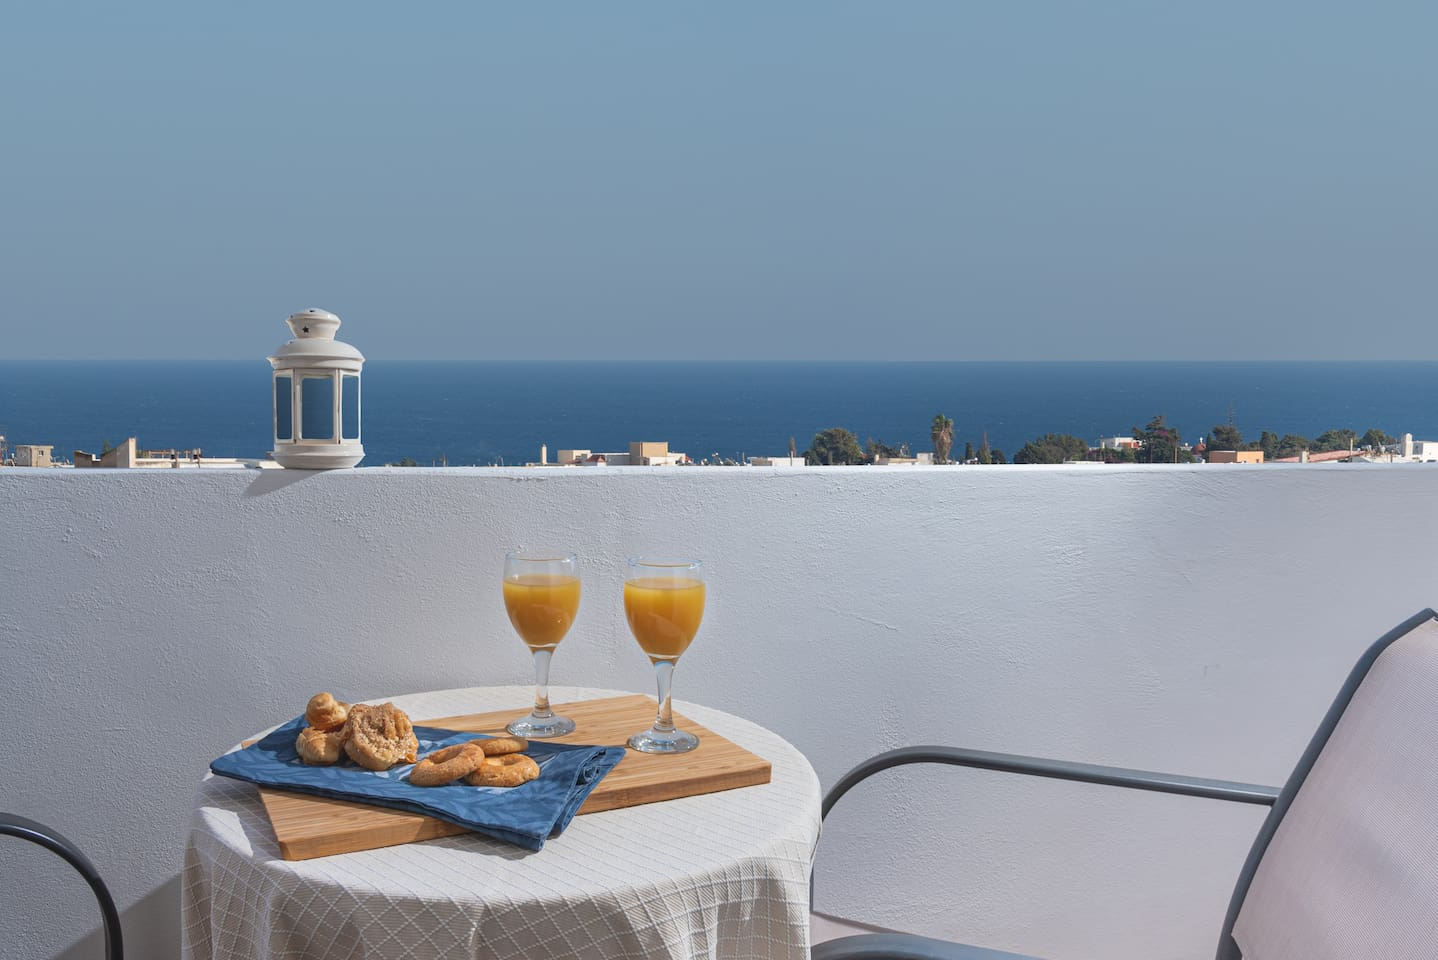 Start your day with breakfast al-fresco and breathtaking views!